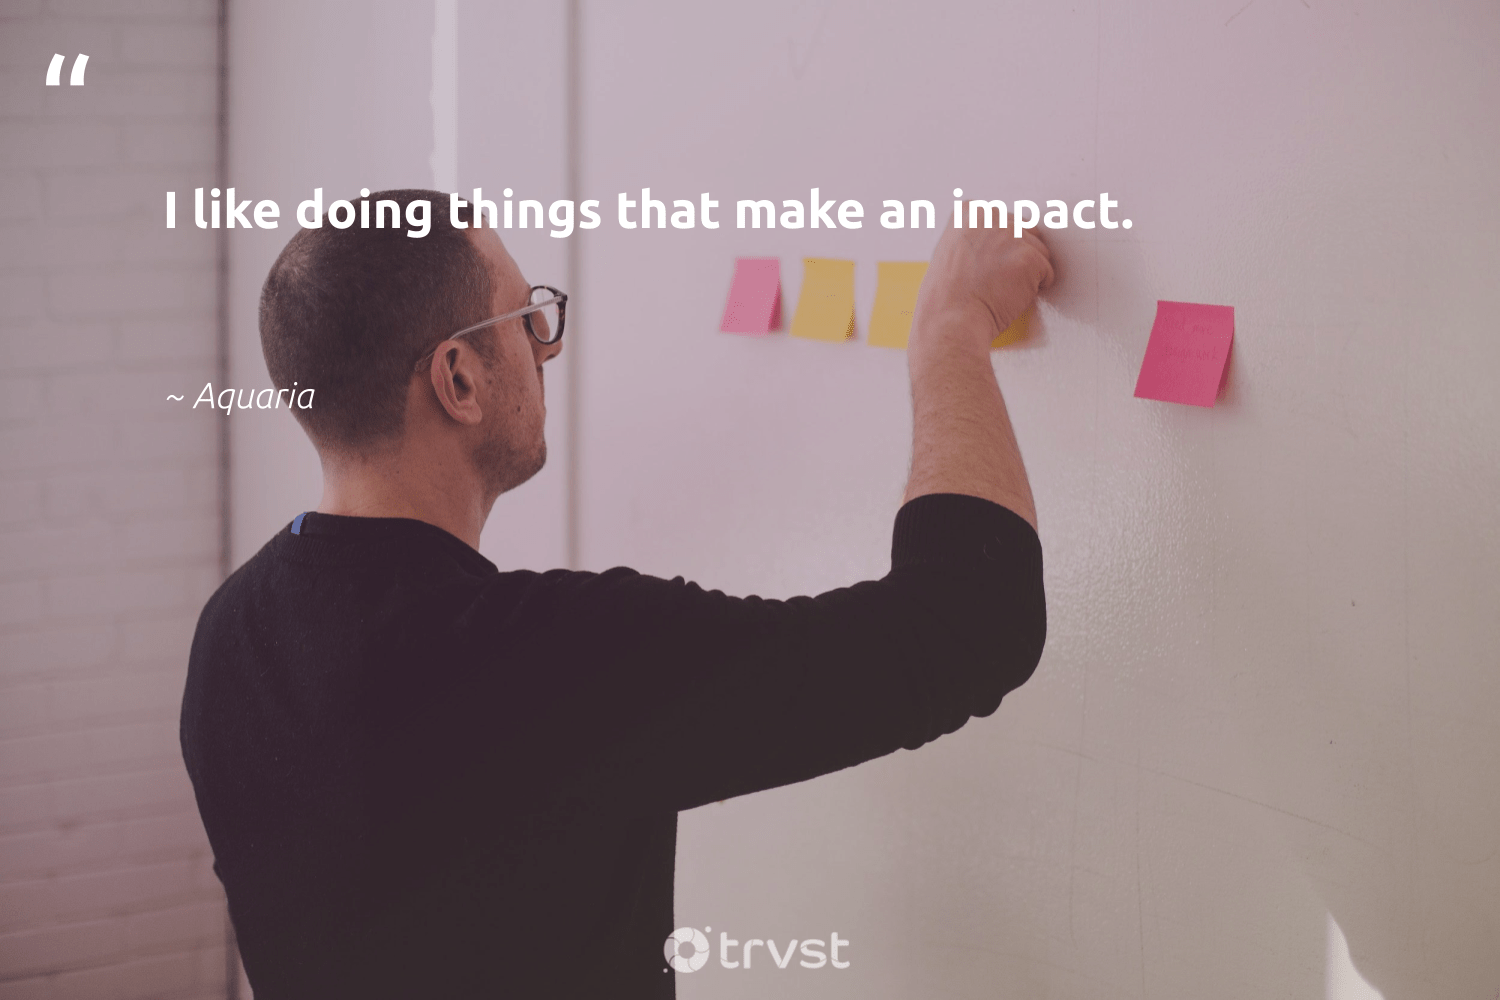 """""""I like doing things that make an impact.""""  - Aquaria #trvst #quotes #impact #giveback #takeaction #makeadifference #socialimpact #ethicalbusiness #bethechange #dogood #collectiveaction #weareallone"""